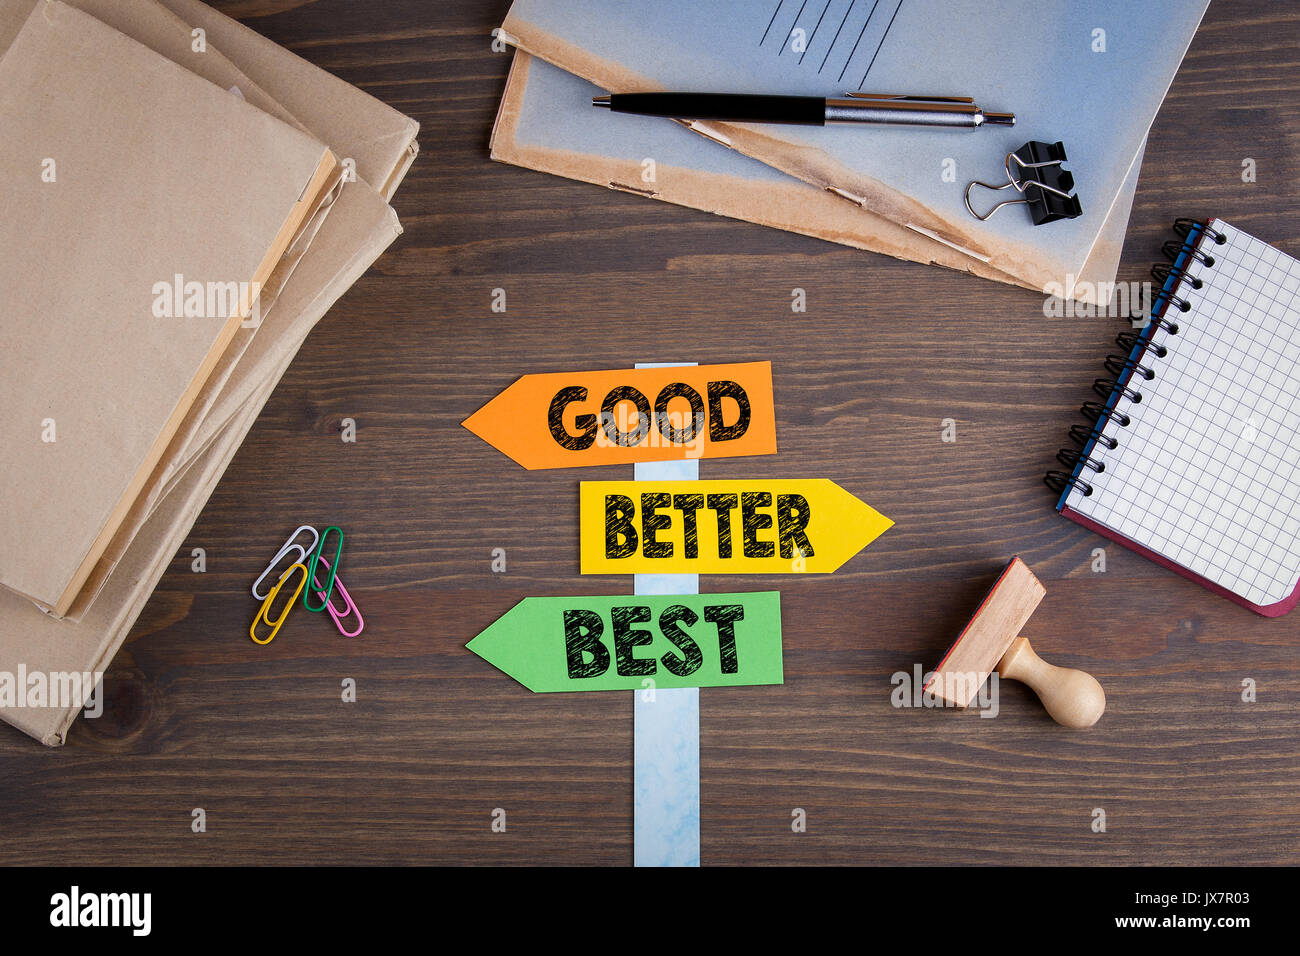 Good, better and best concept. Paper signpost on a wooden desk. - Stock Image